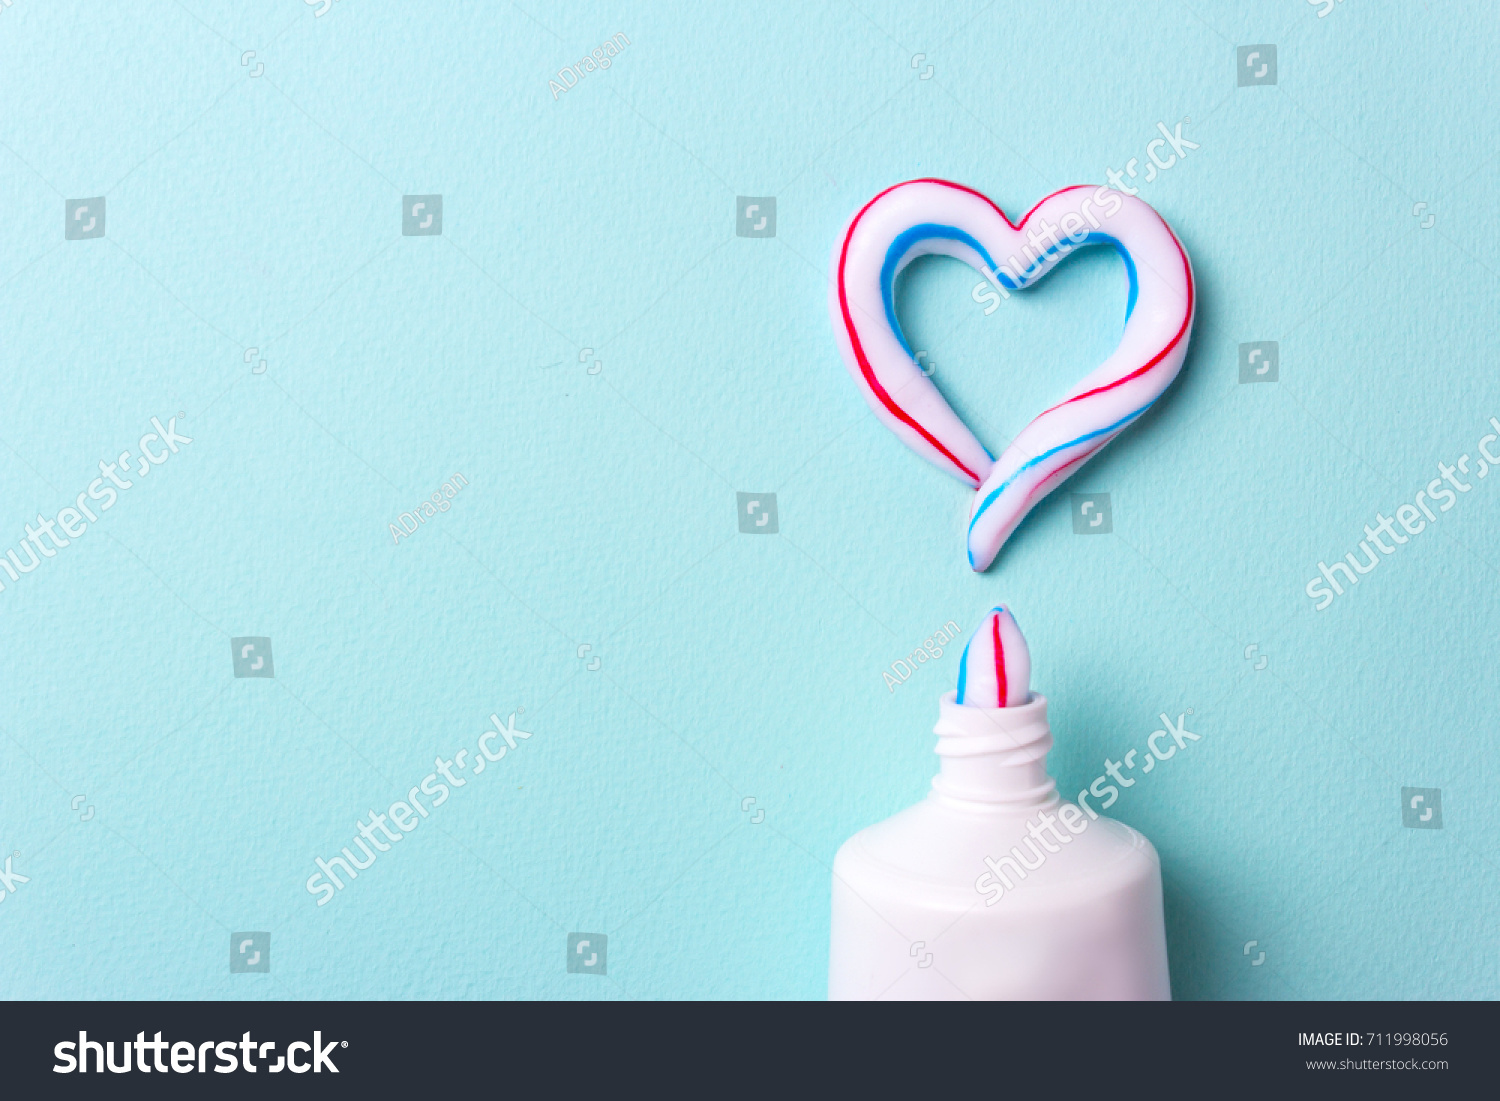 Heart symbol love toothpaste copy space stock photo 711998056 heart symbol and love from toothpaste copy space for text biocorpaavc Choice Image